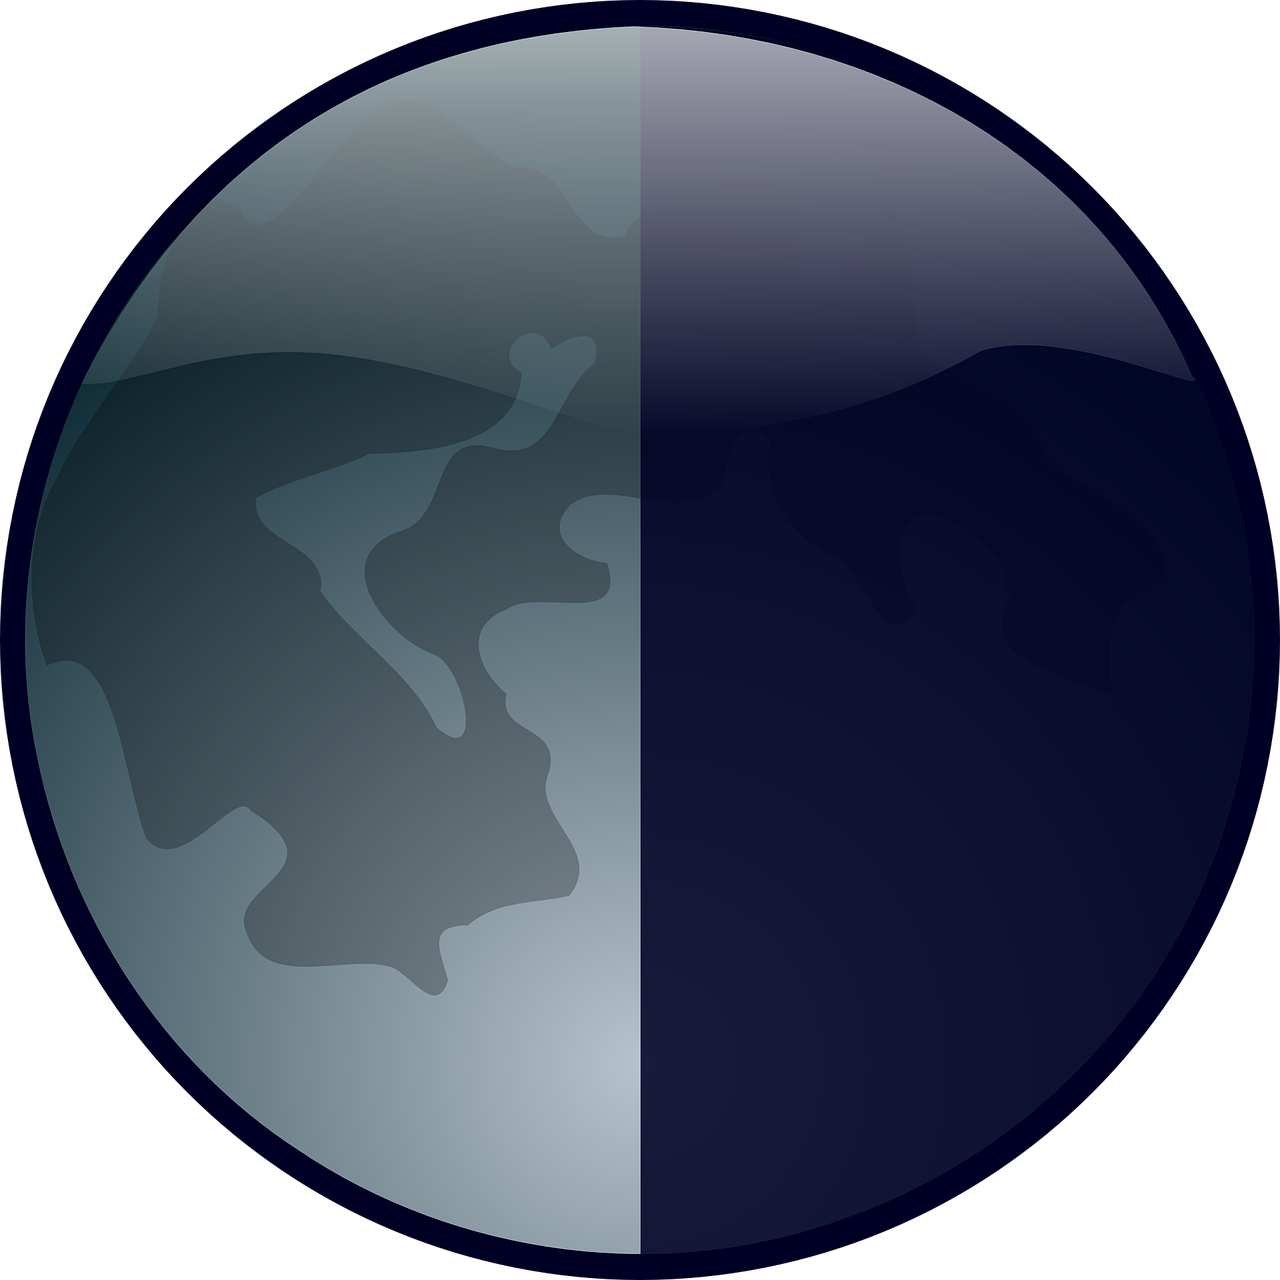 moon earth phase free photo